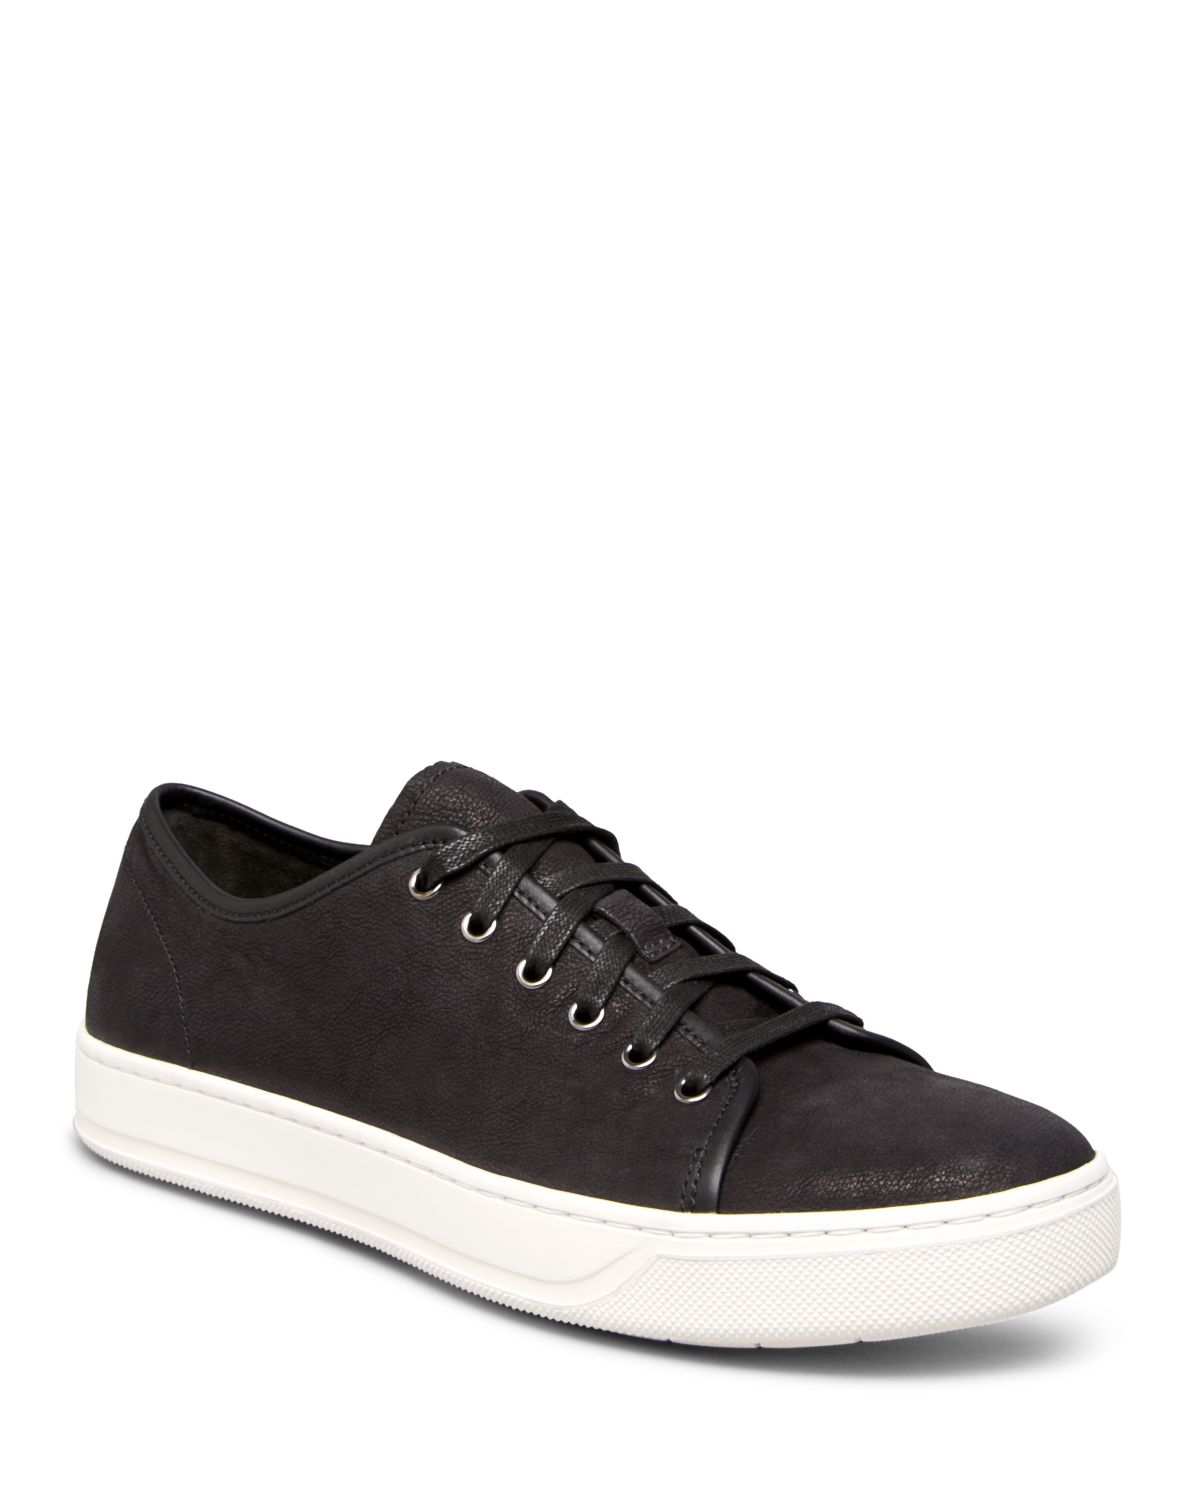 Vince Austin Washed Nubuck Lace Up Sneakers